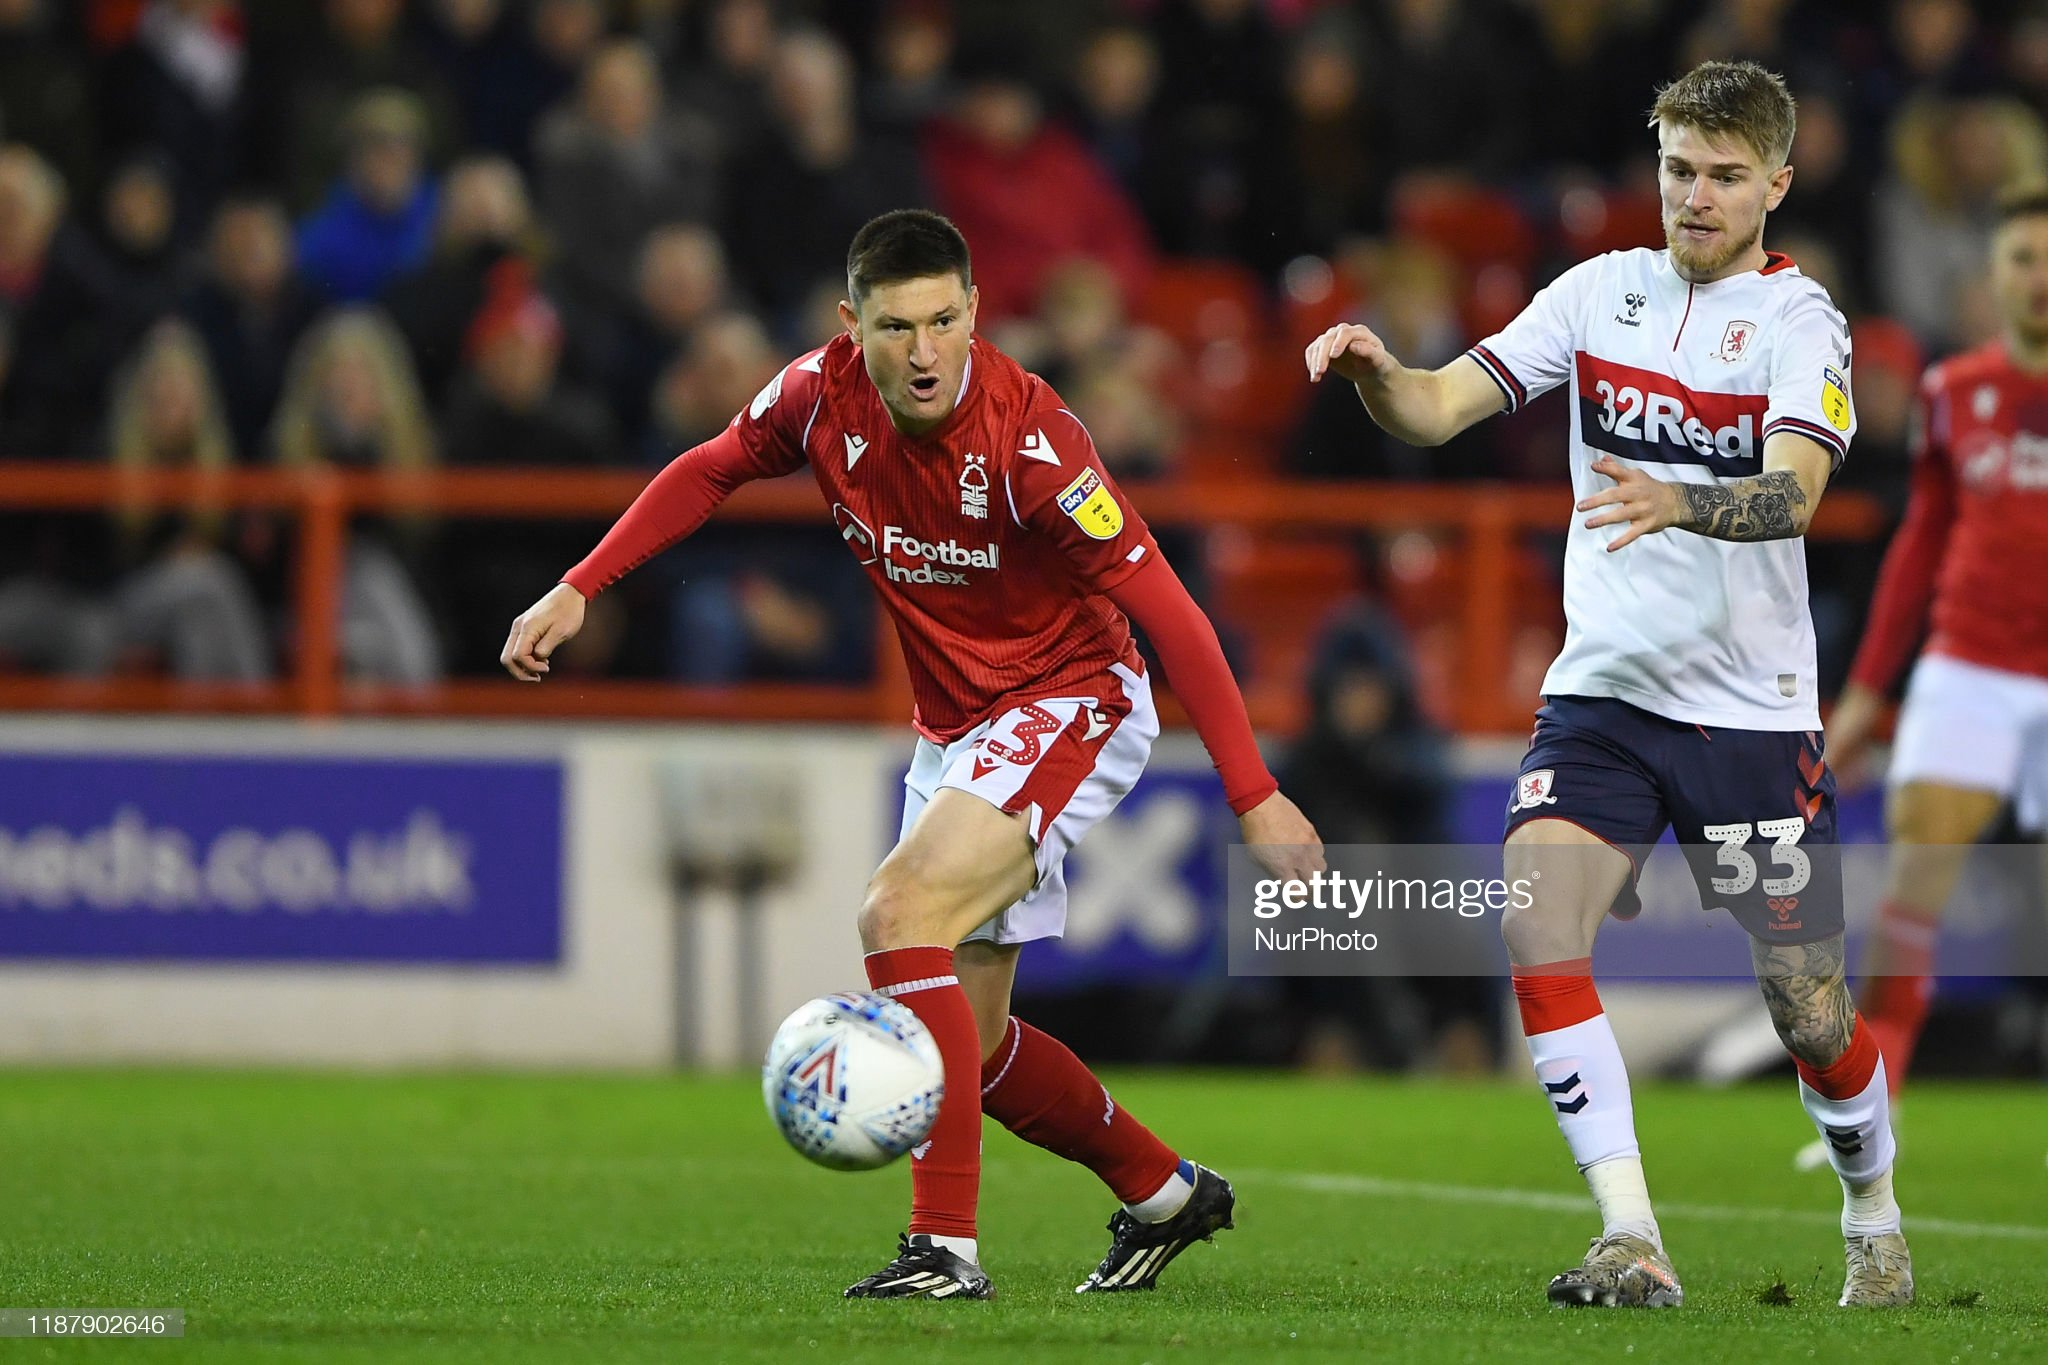 Middlesbrough v Nottingham Forest Preview, prediction and odds